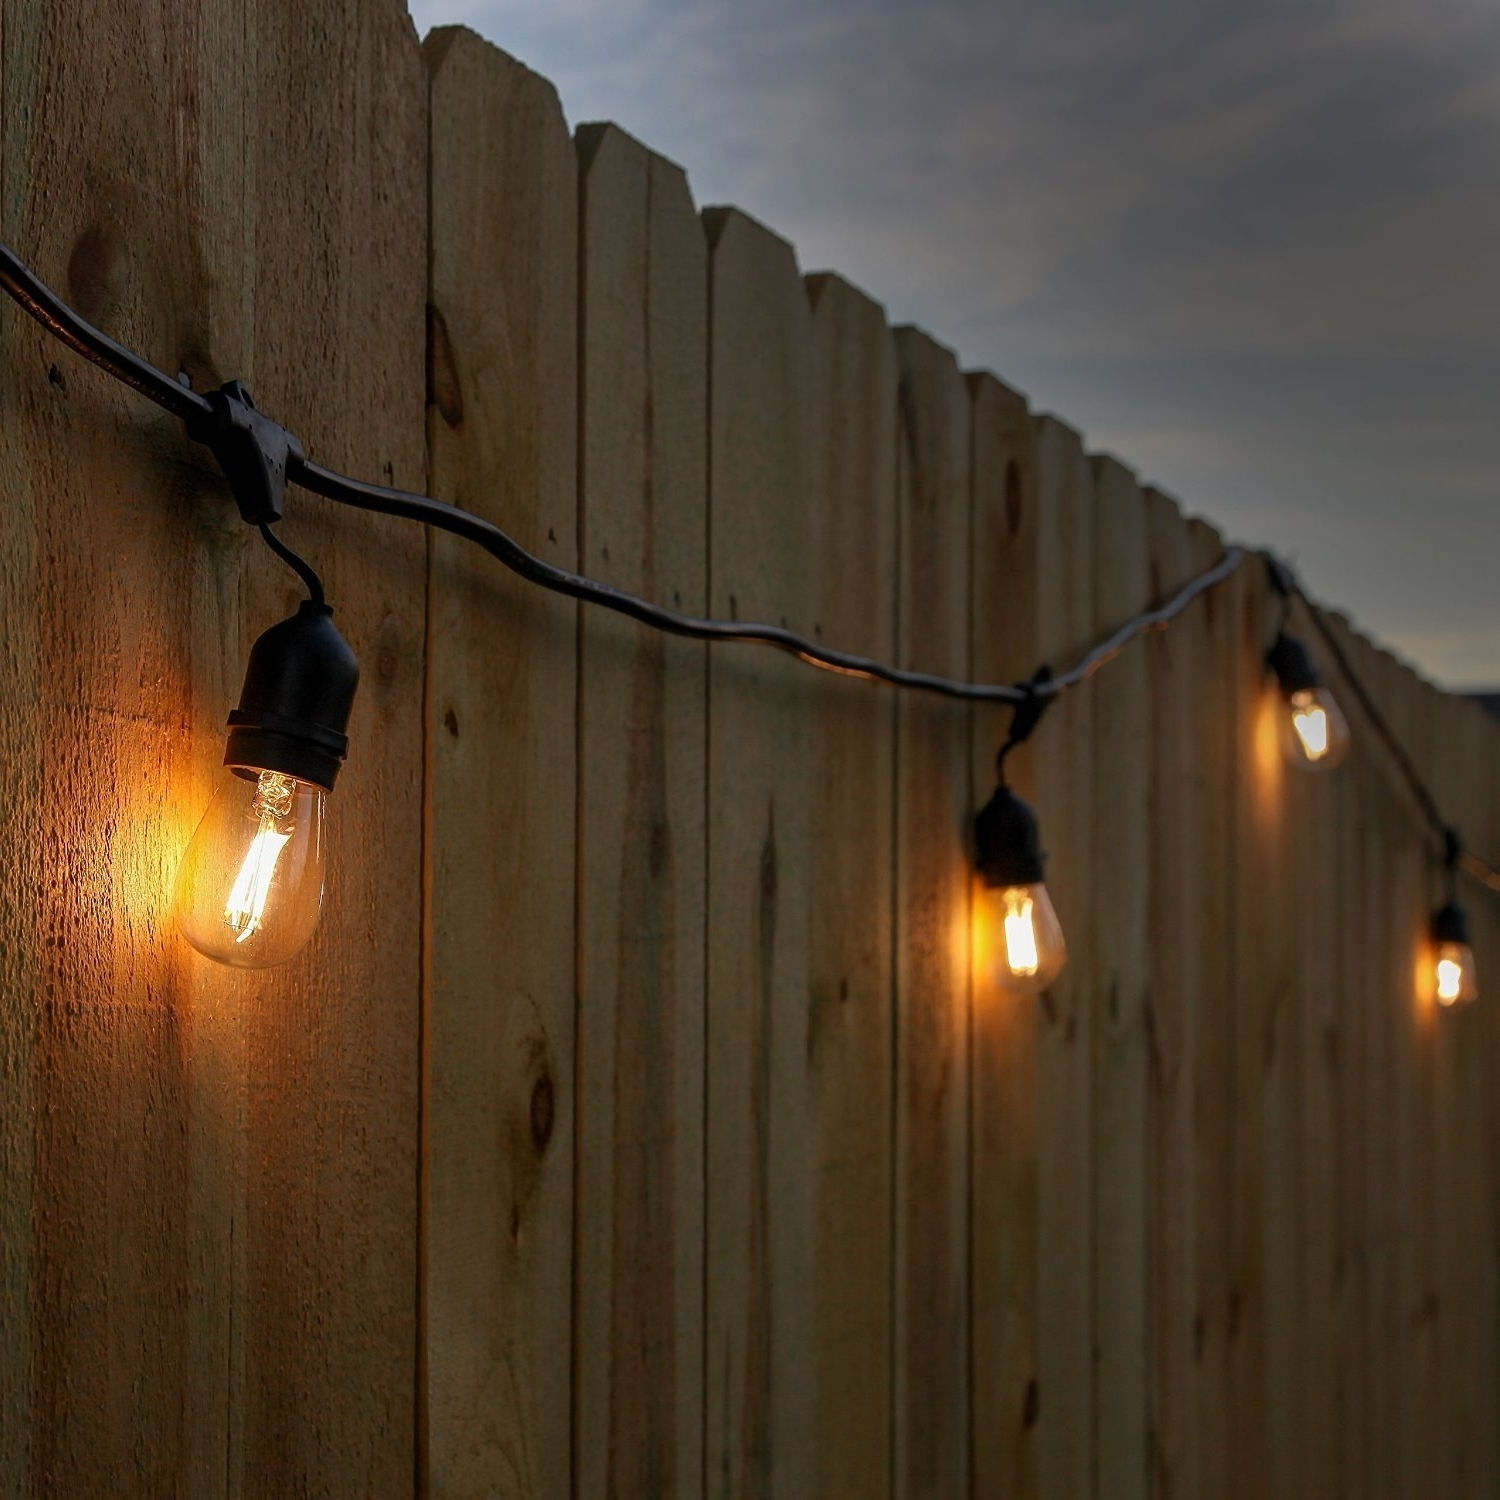 Well Liked Newhouse Lighting 48 Foot Outdoor String Lights, Led Bulbs Included Regarding Hanging Outdoor Lights With Wire (View 16 of 20)